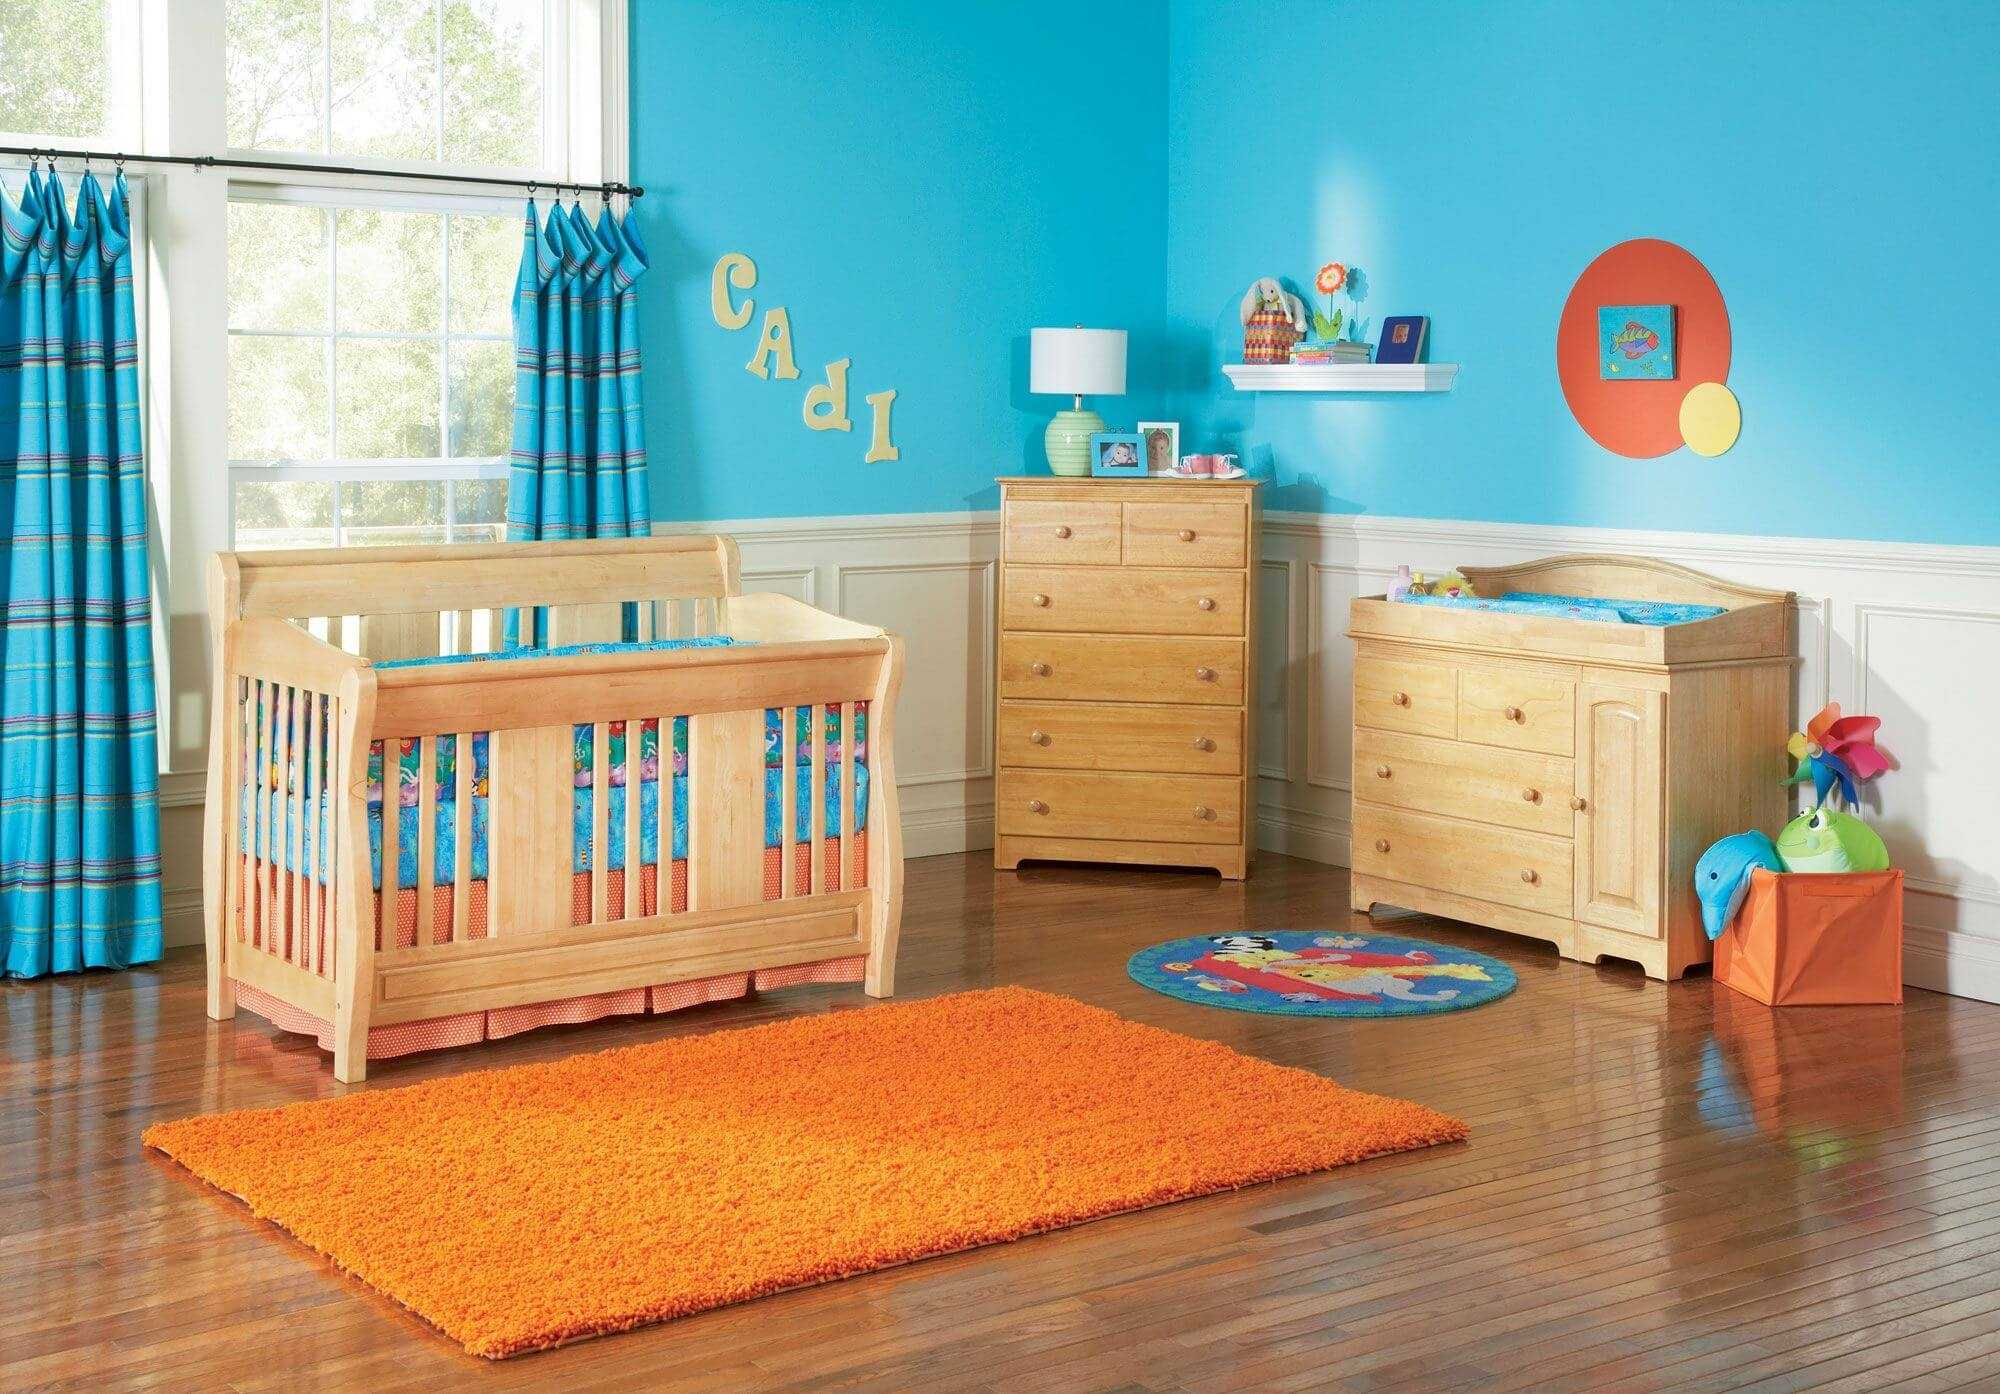 20 Ba Boy Nursery Ideas Themes Designs Pictures Intended For Blue Curtains For Boys Room (Image 1 of 25)